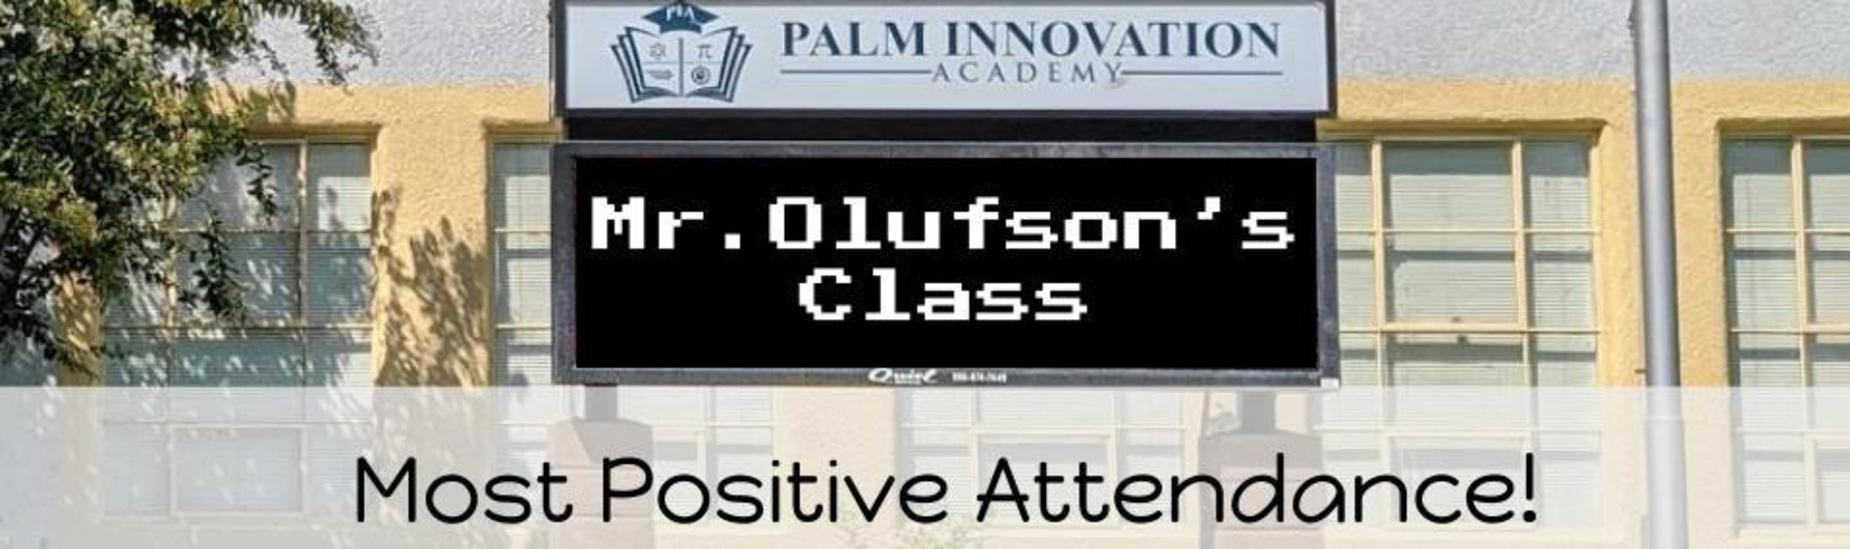 Congrats to Mr. Olufson's Class - Most Positive Attendance this week!